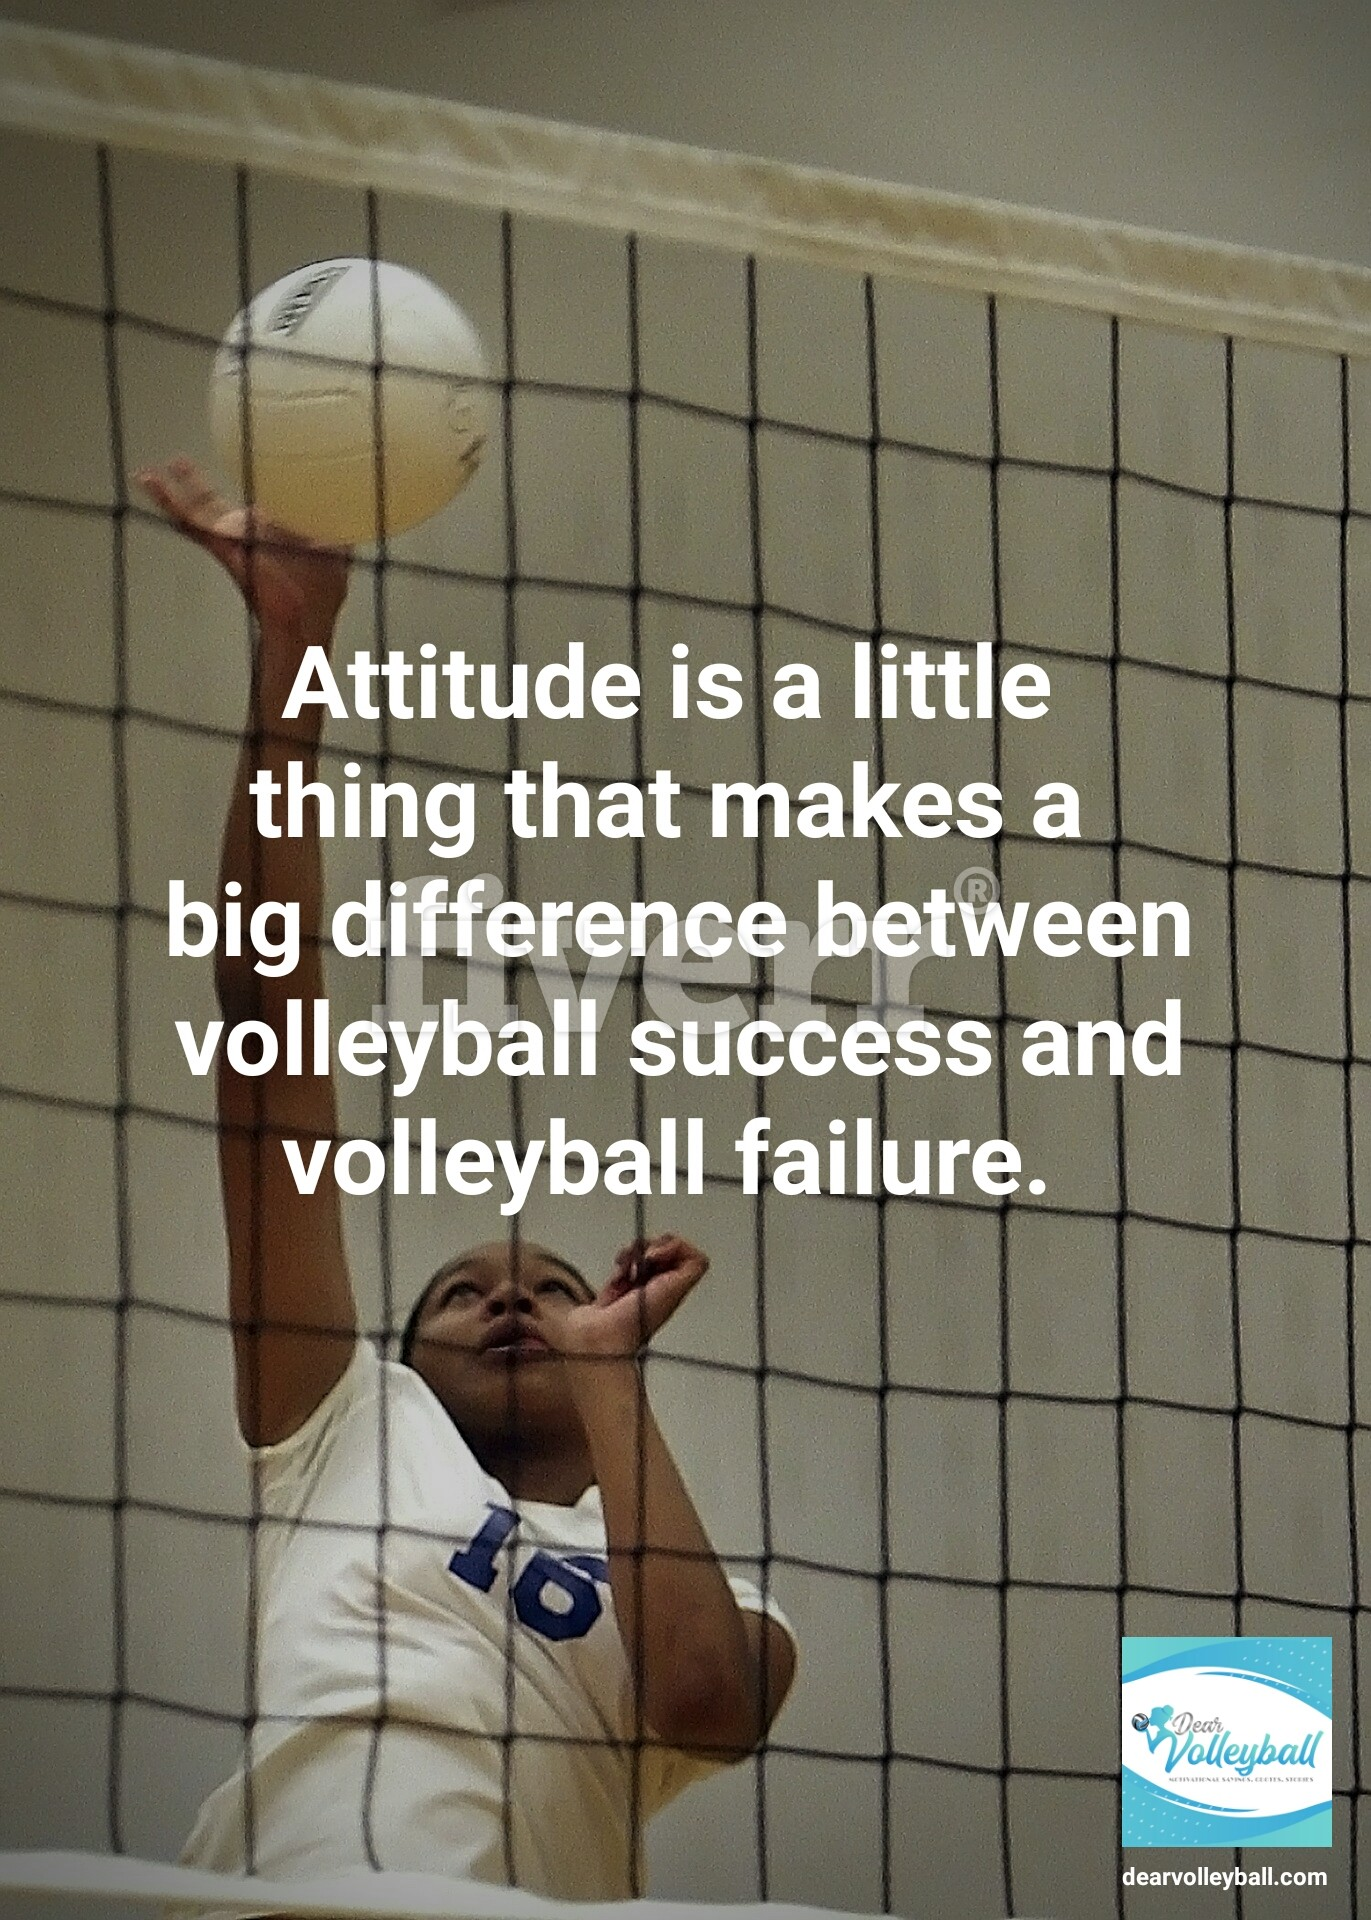 Attitude is a little thing that makes a big difference between volleyball success and volleyball failure